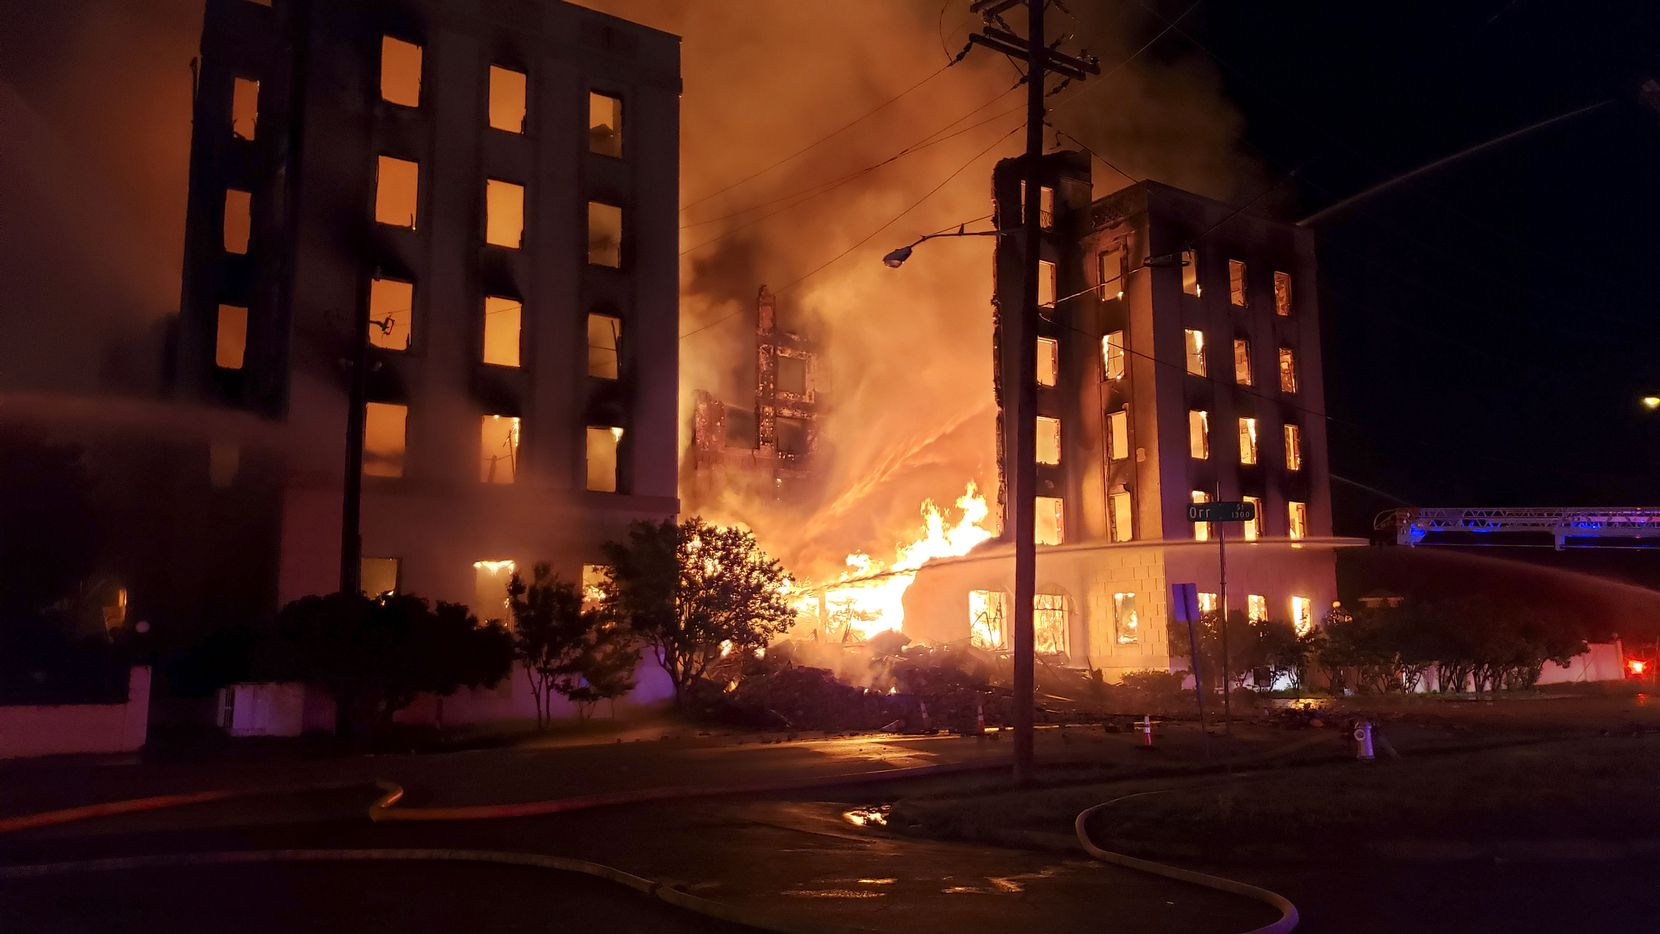 The vacant Ambassador Hotel, a 115-year-old historic structure in the Cedars neighborhood just south of downtown Dallas, was gutted by fire Tuesday morning, May 28. 2019.